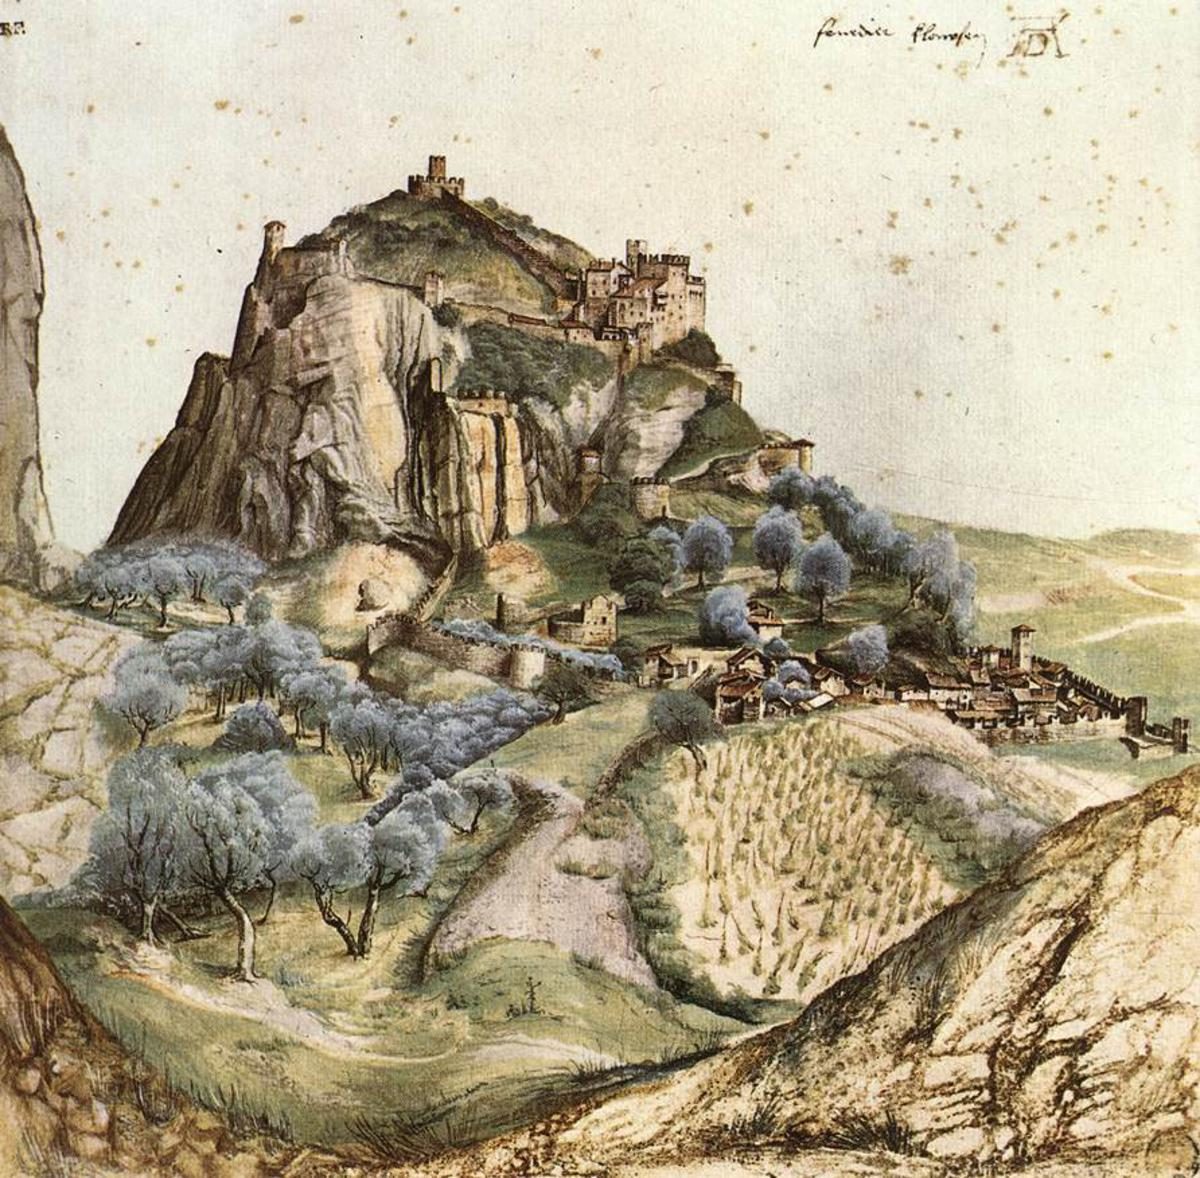 Arco Mountain painting made by Albrecht Durer